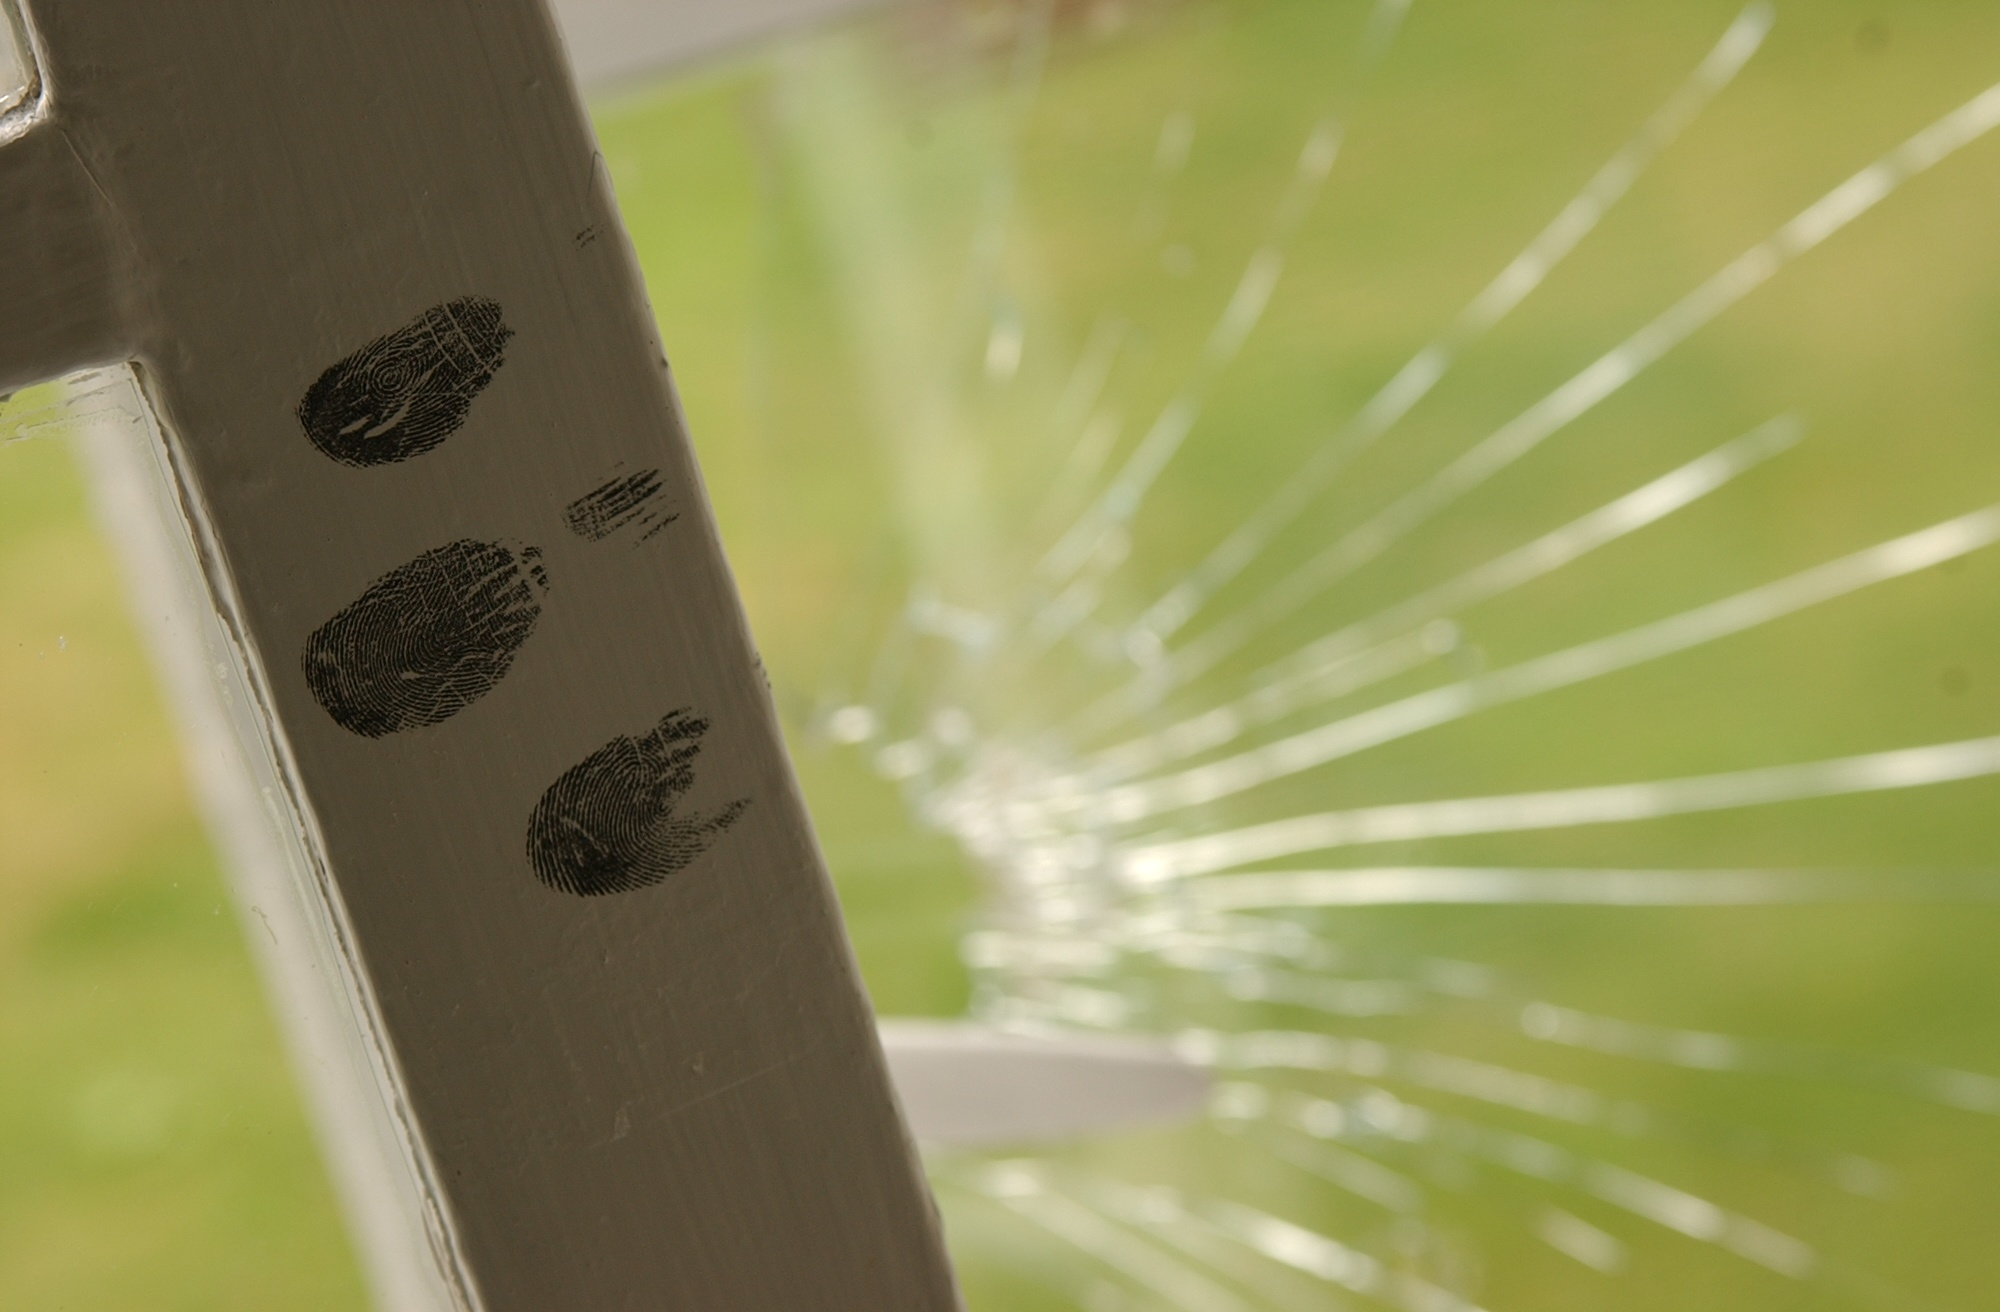 Burglar Resistant Windows in Your Home